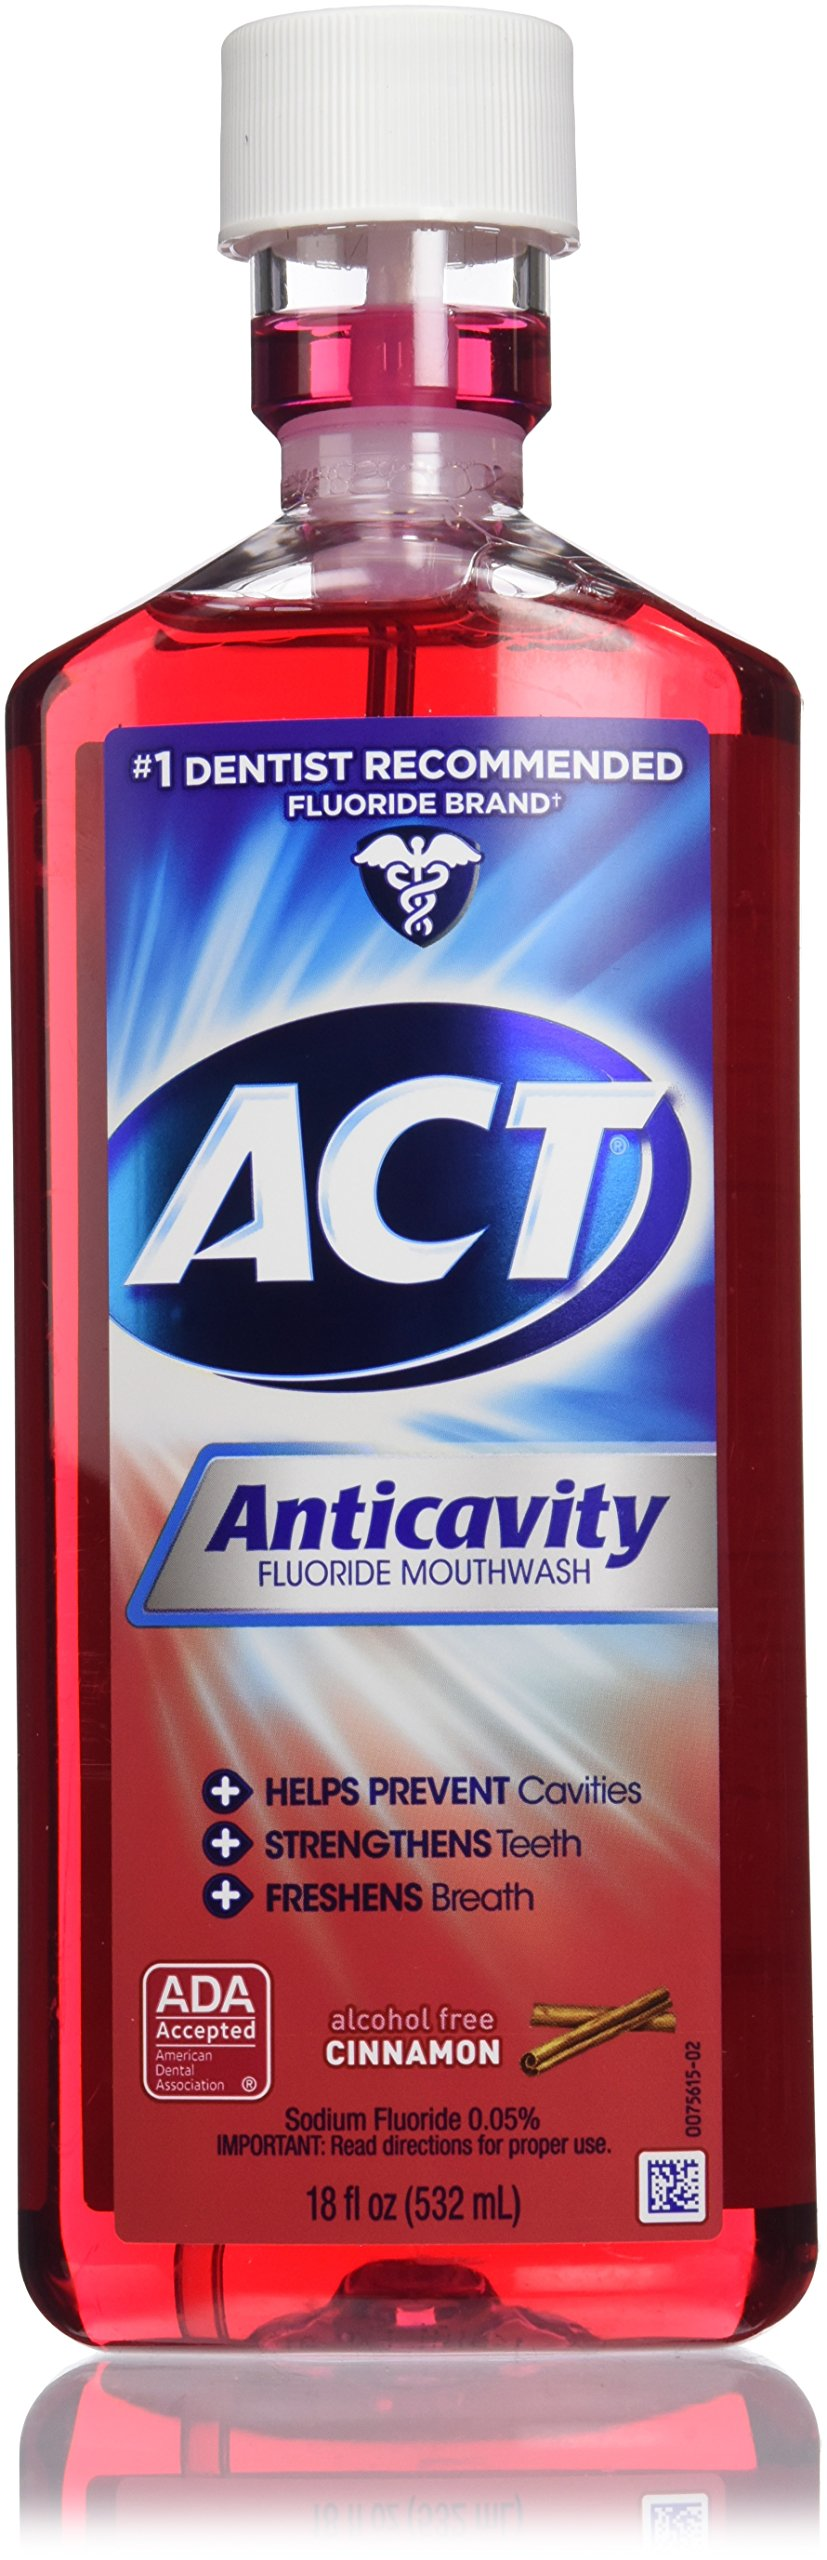 ACT Anticavity Fluoride Rinse Cinnamon 18 oz (Pack of 6)